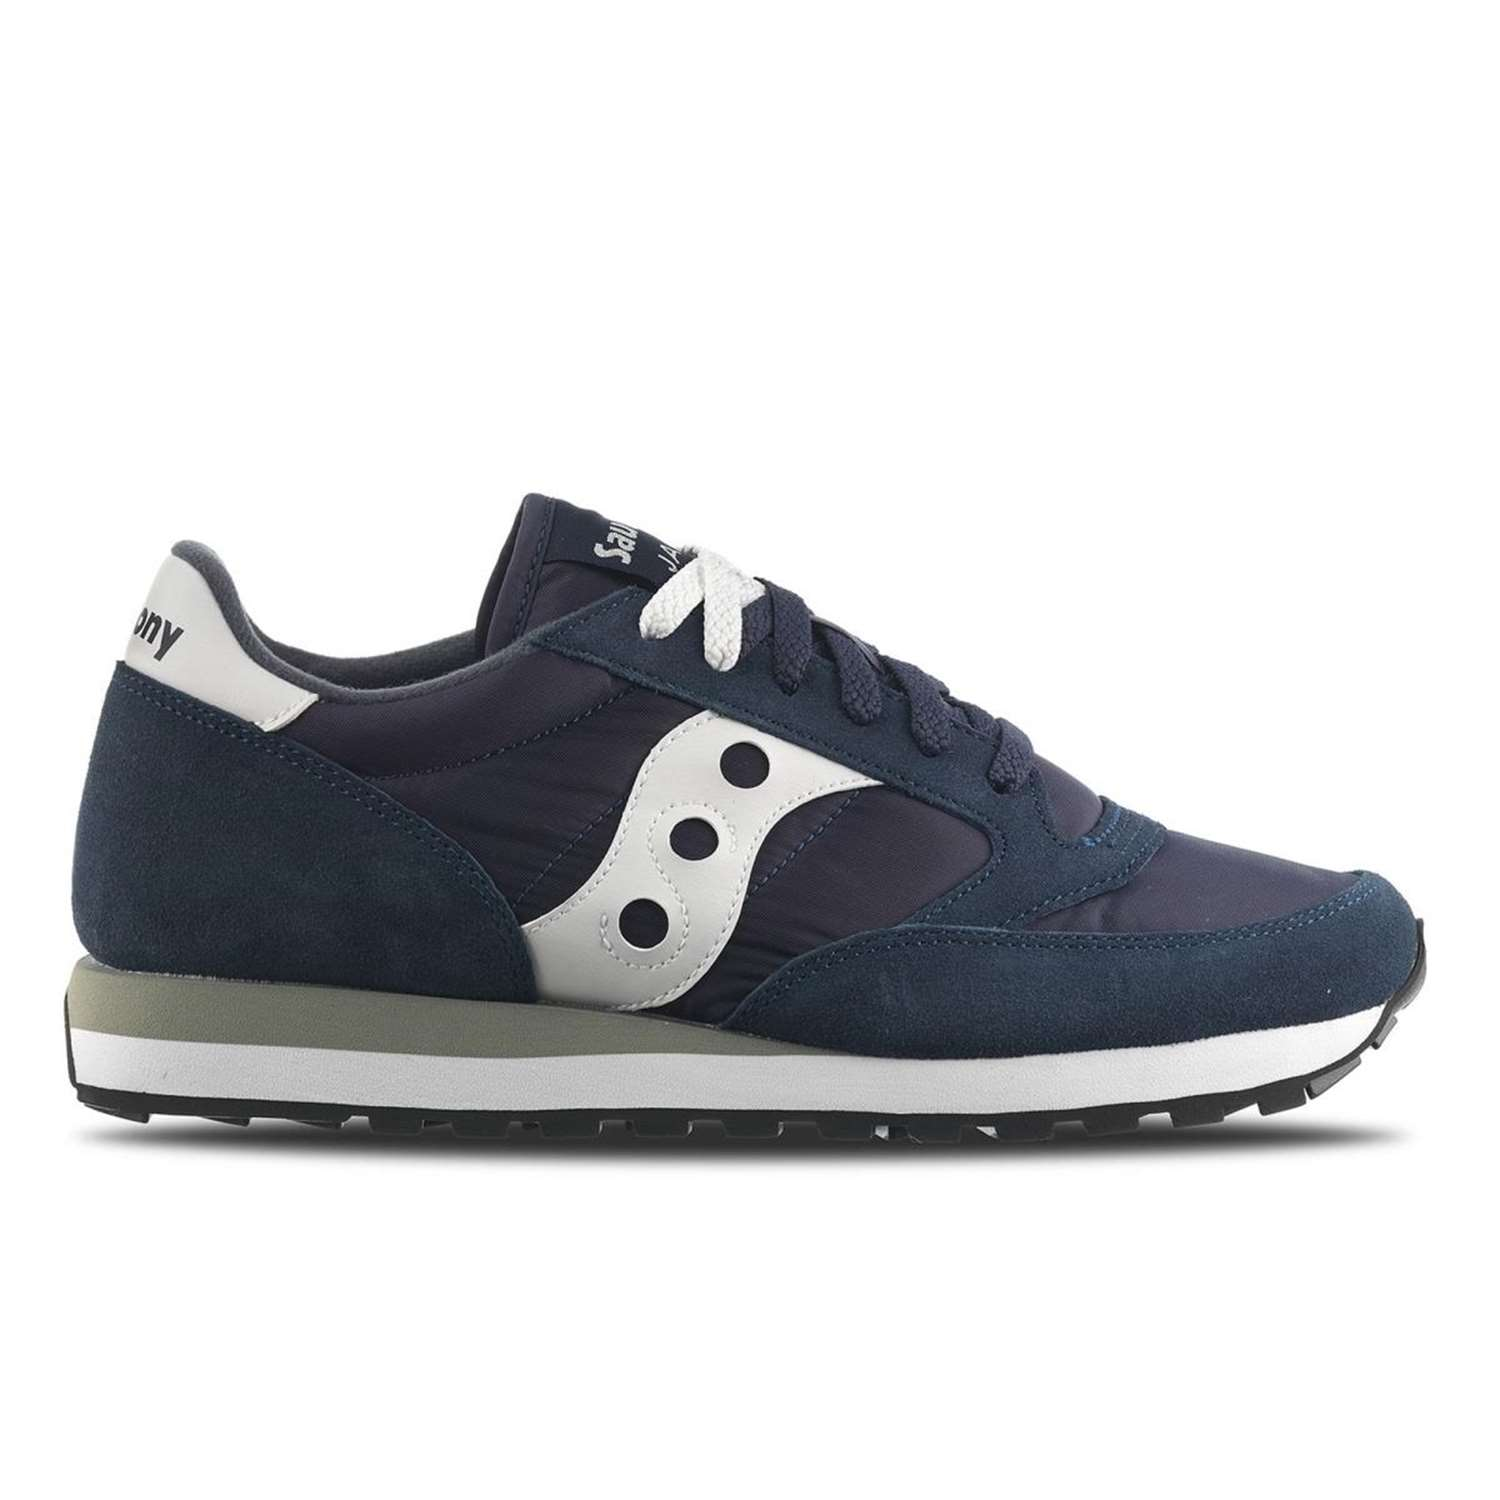 Alta qualit Sneakers Donna Primavera/Estate Saucony S1044316 Primavera/Estate Donna vendita faa855